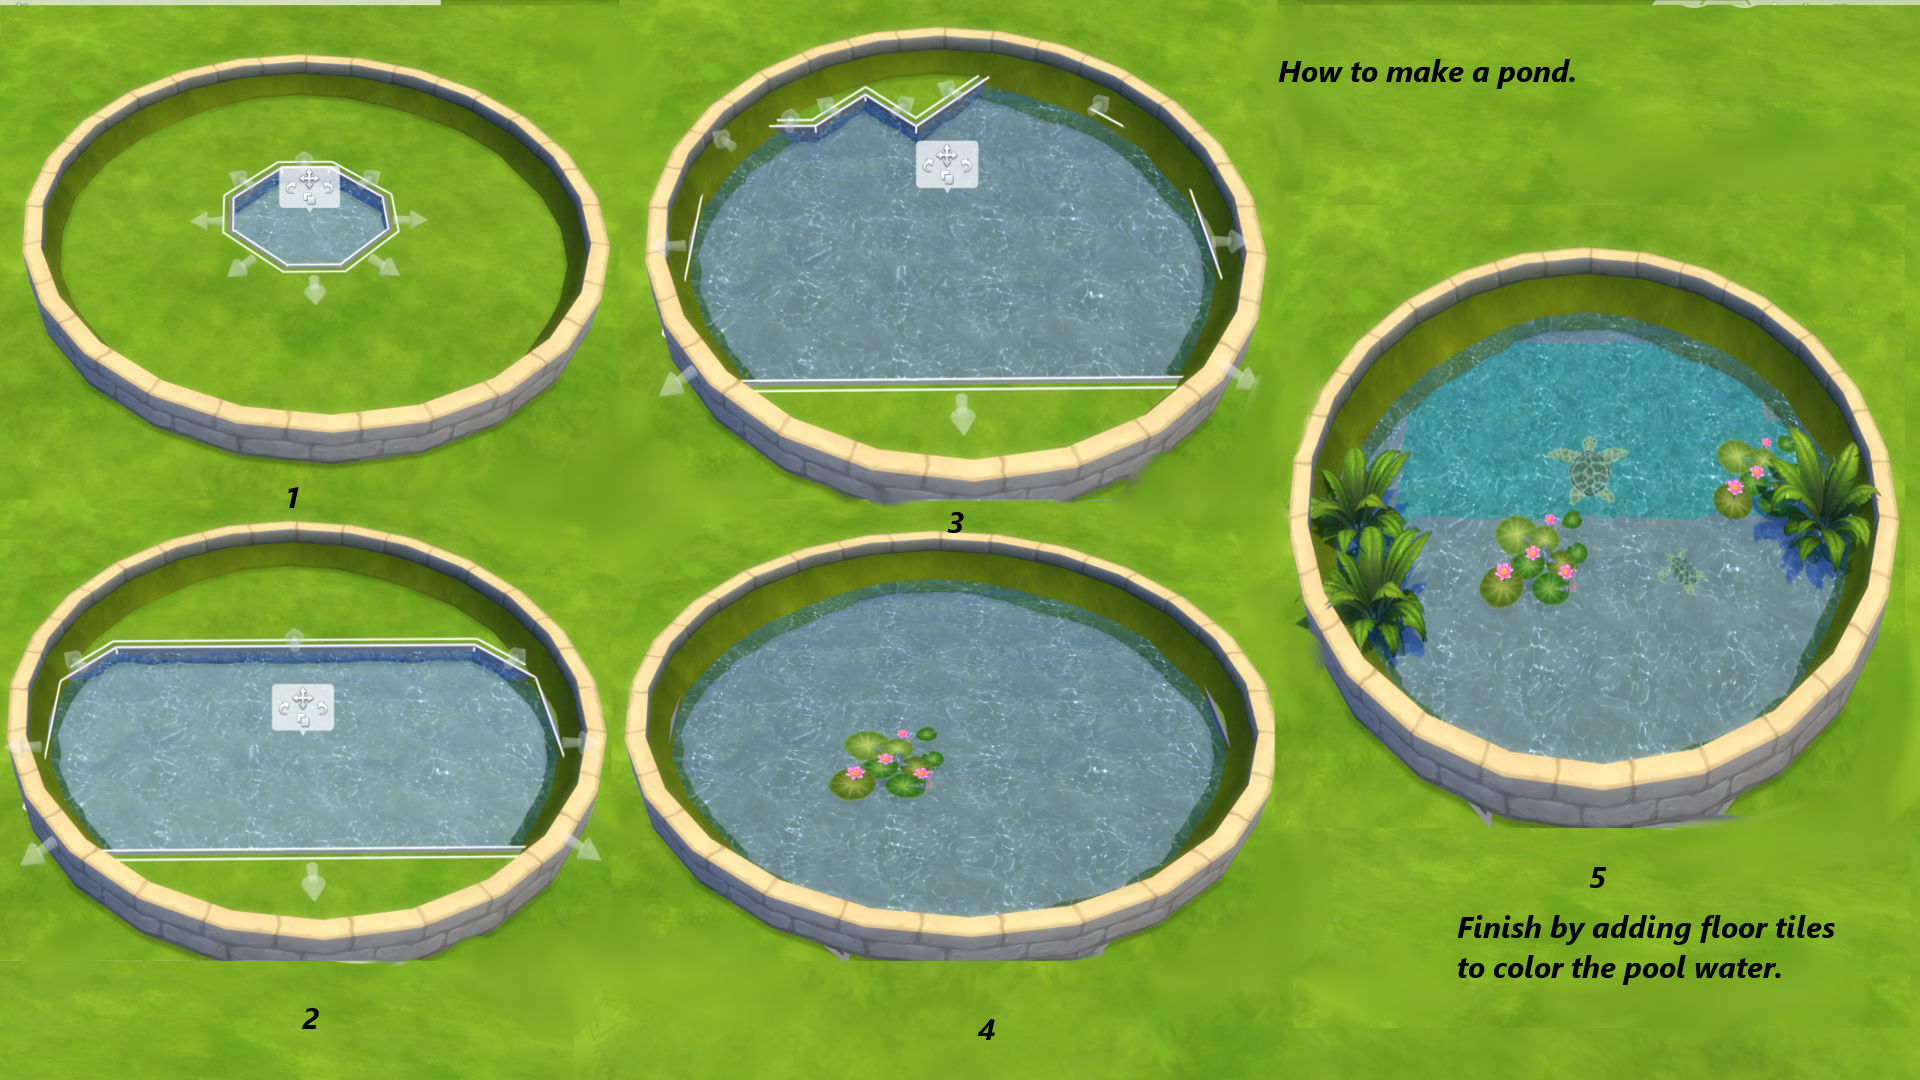 Sims 3 Pool Rund Drehen Mod The Sims On The Curve Circular And Oval Flowerbeds